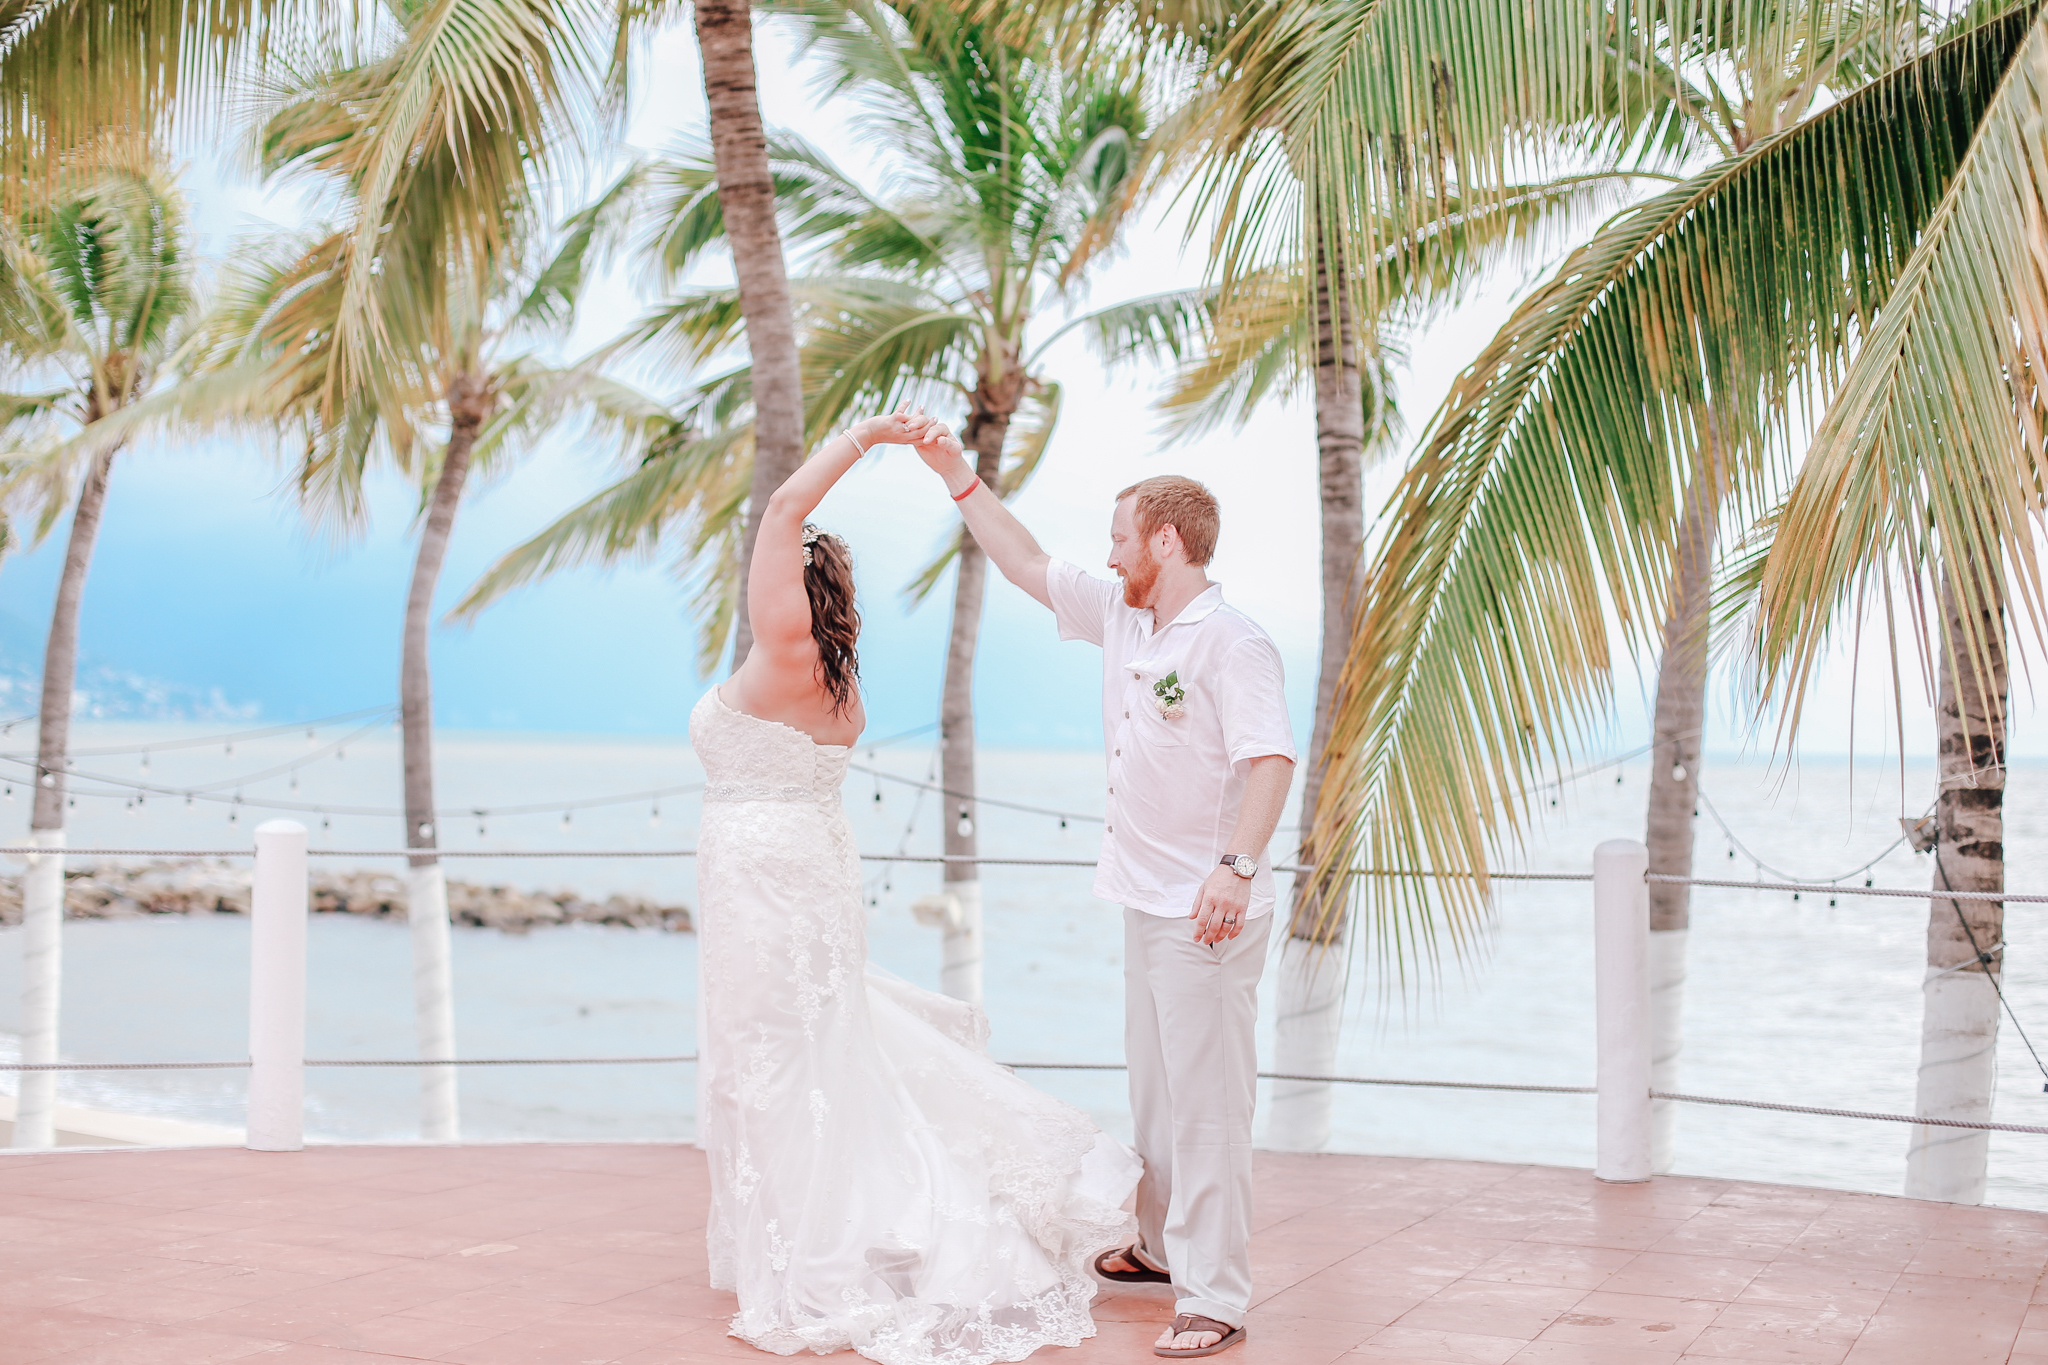 Tiffany and Ryan - Puerto Vallarta Wedding Photographer - 97.jpg